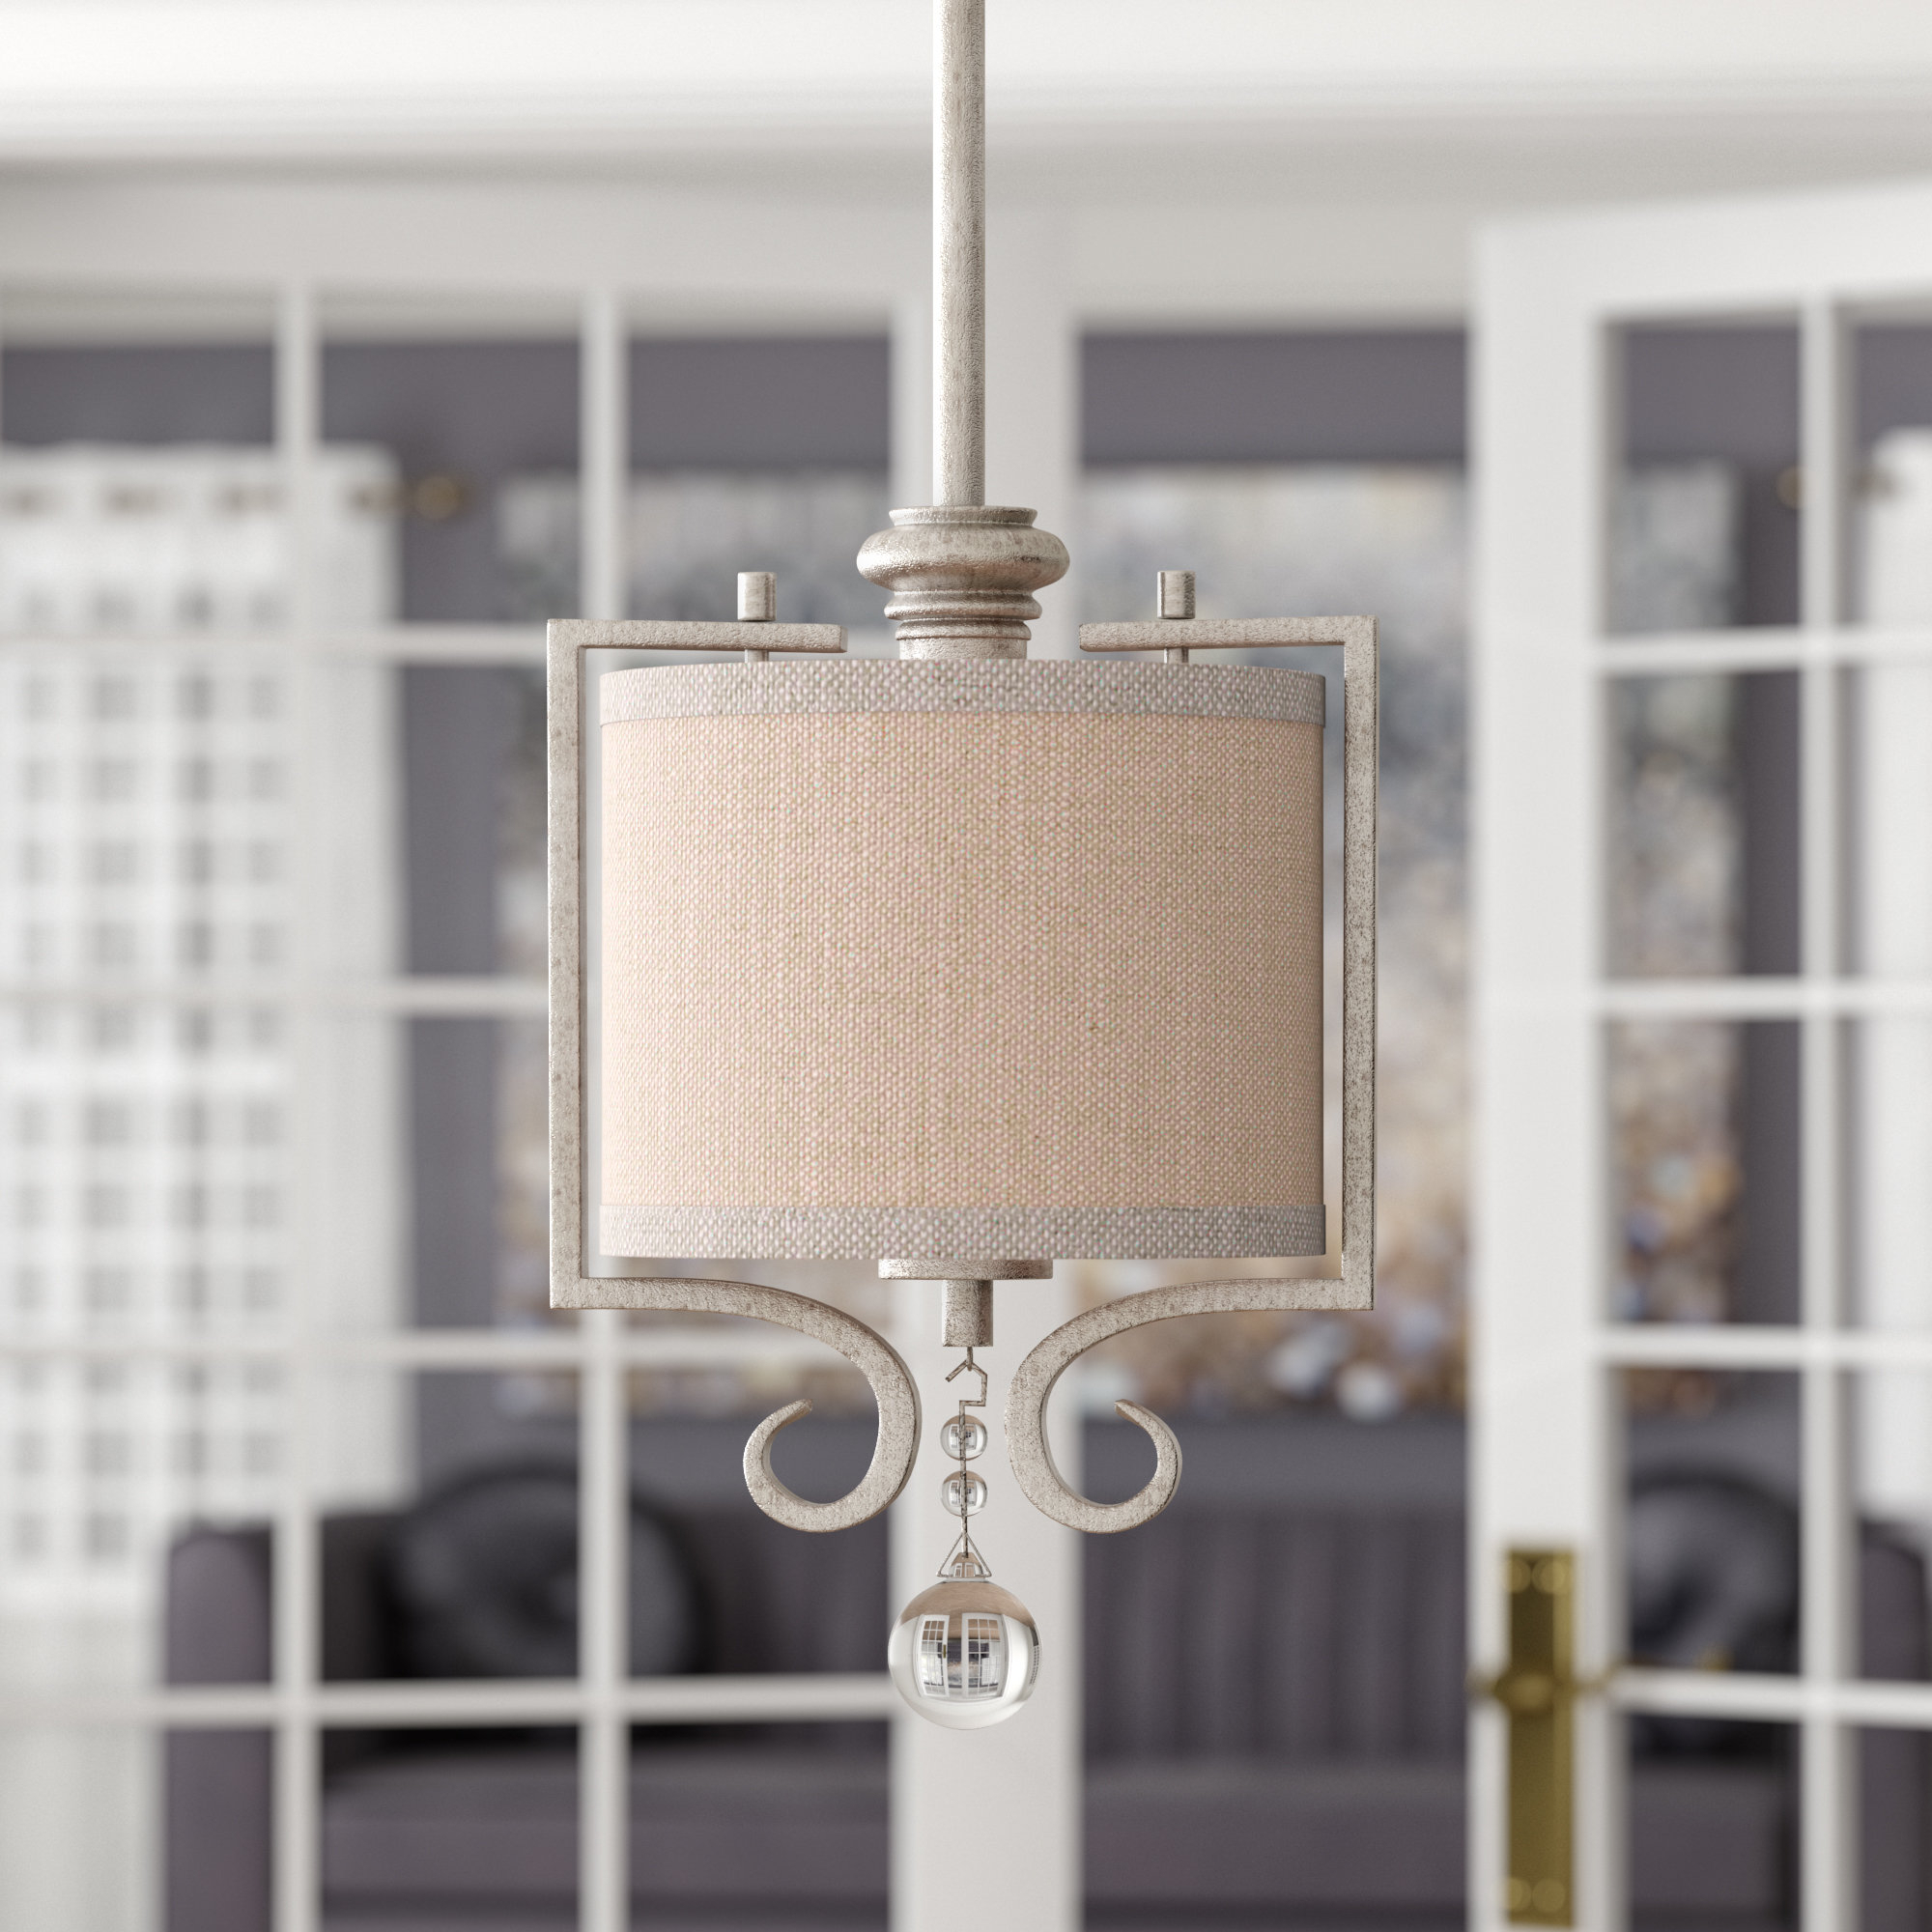 Beasley 1 Light Drum Pendant With Fashionable Kraker 1 Light Single Cylinder Pendants (Gallery 7 of 20)